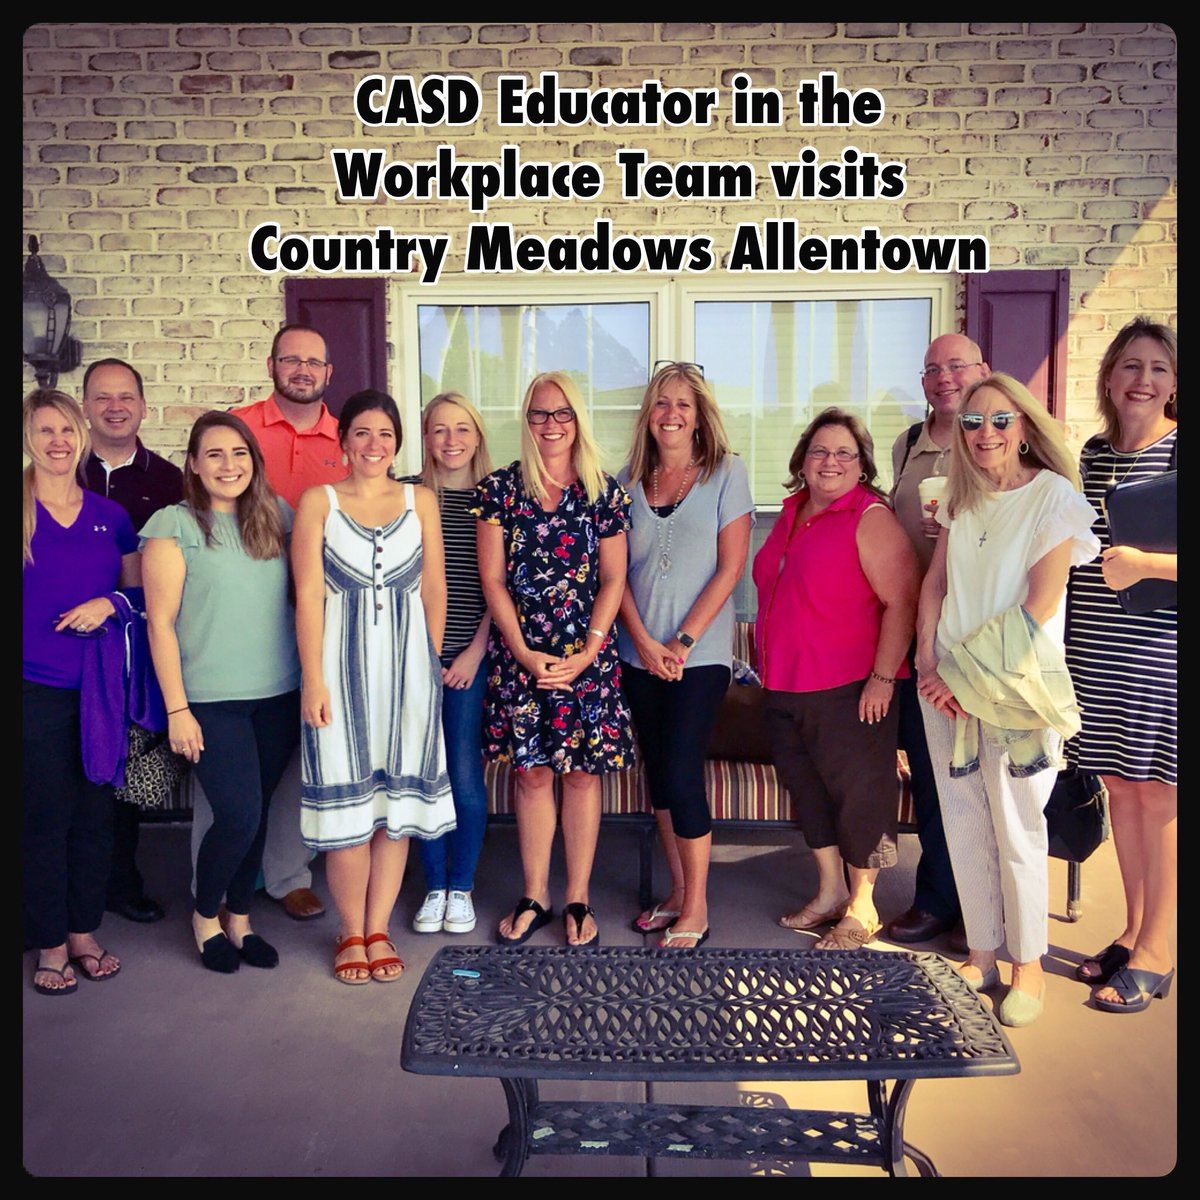 Proud to work with career education groups like this wonderful team! Thanks for choosing Country Meadows!